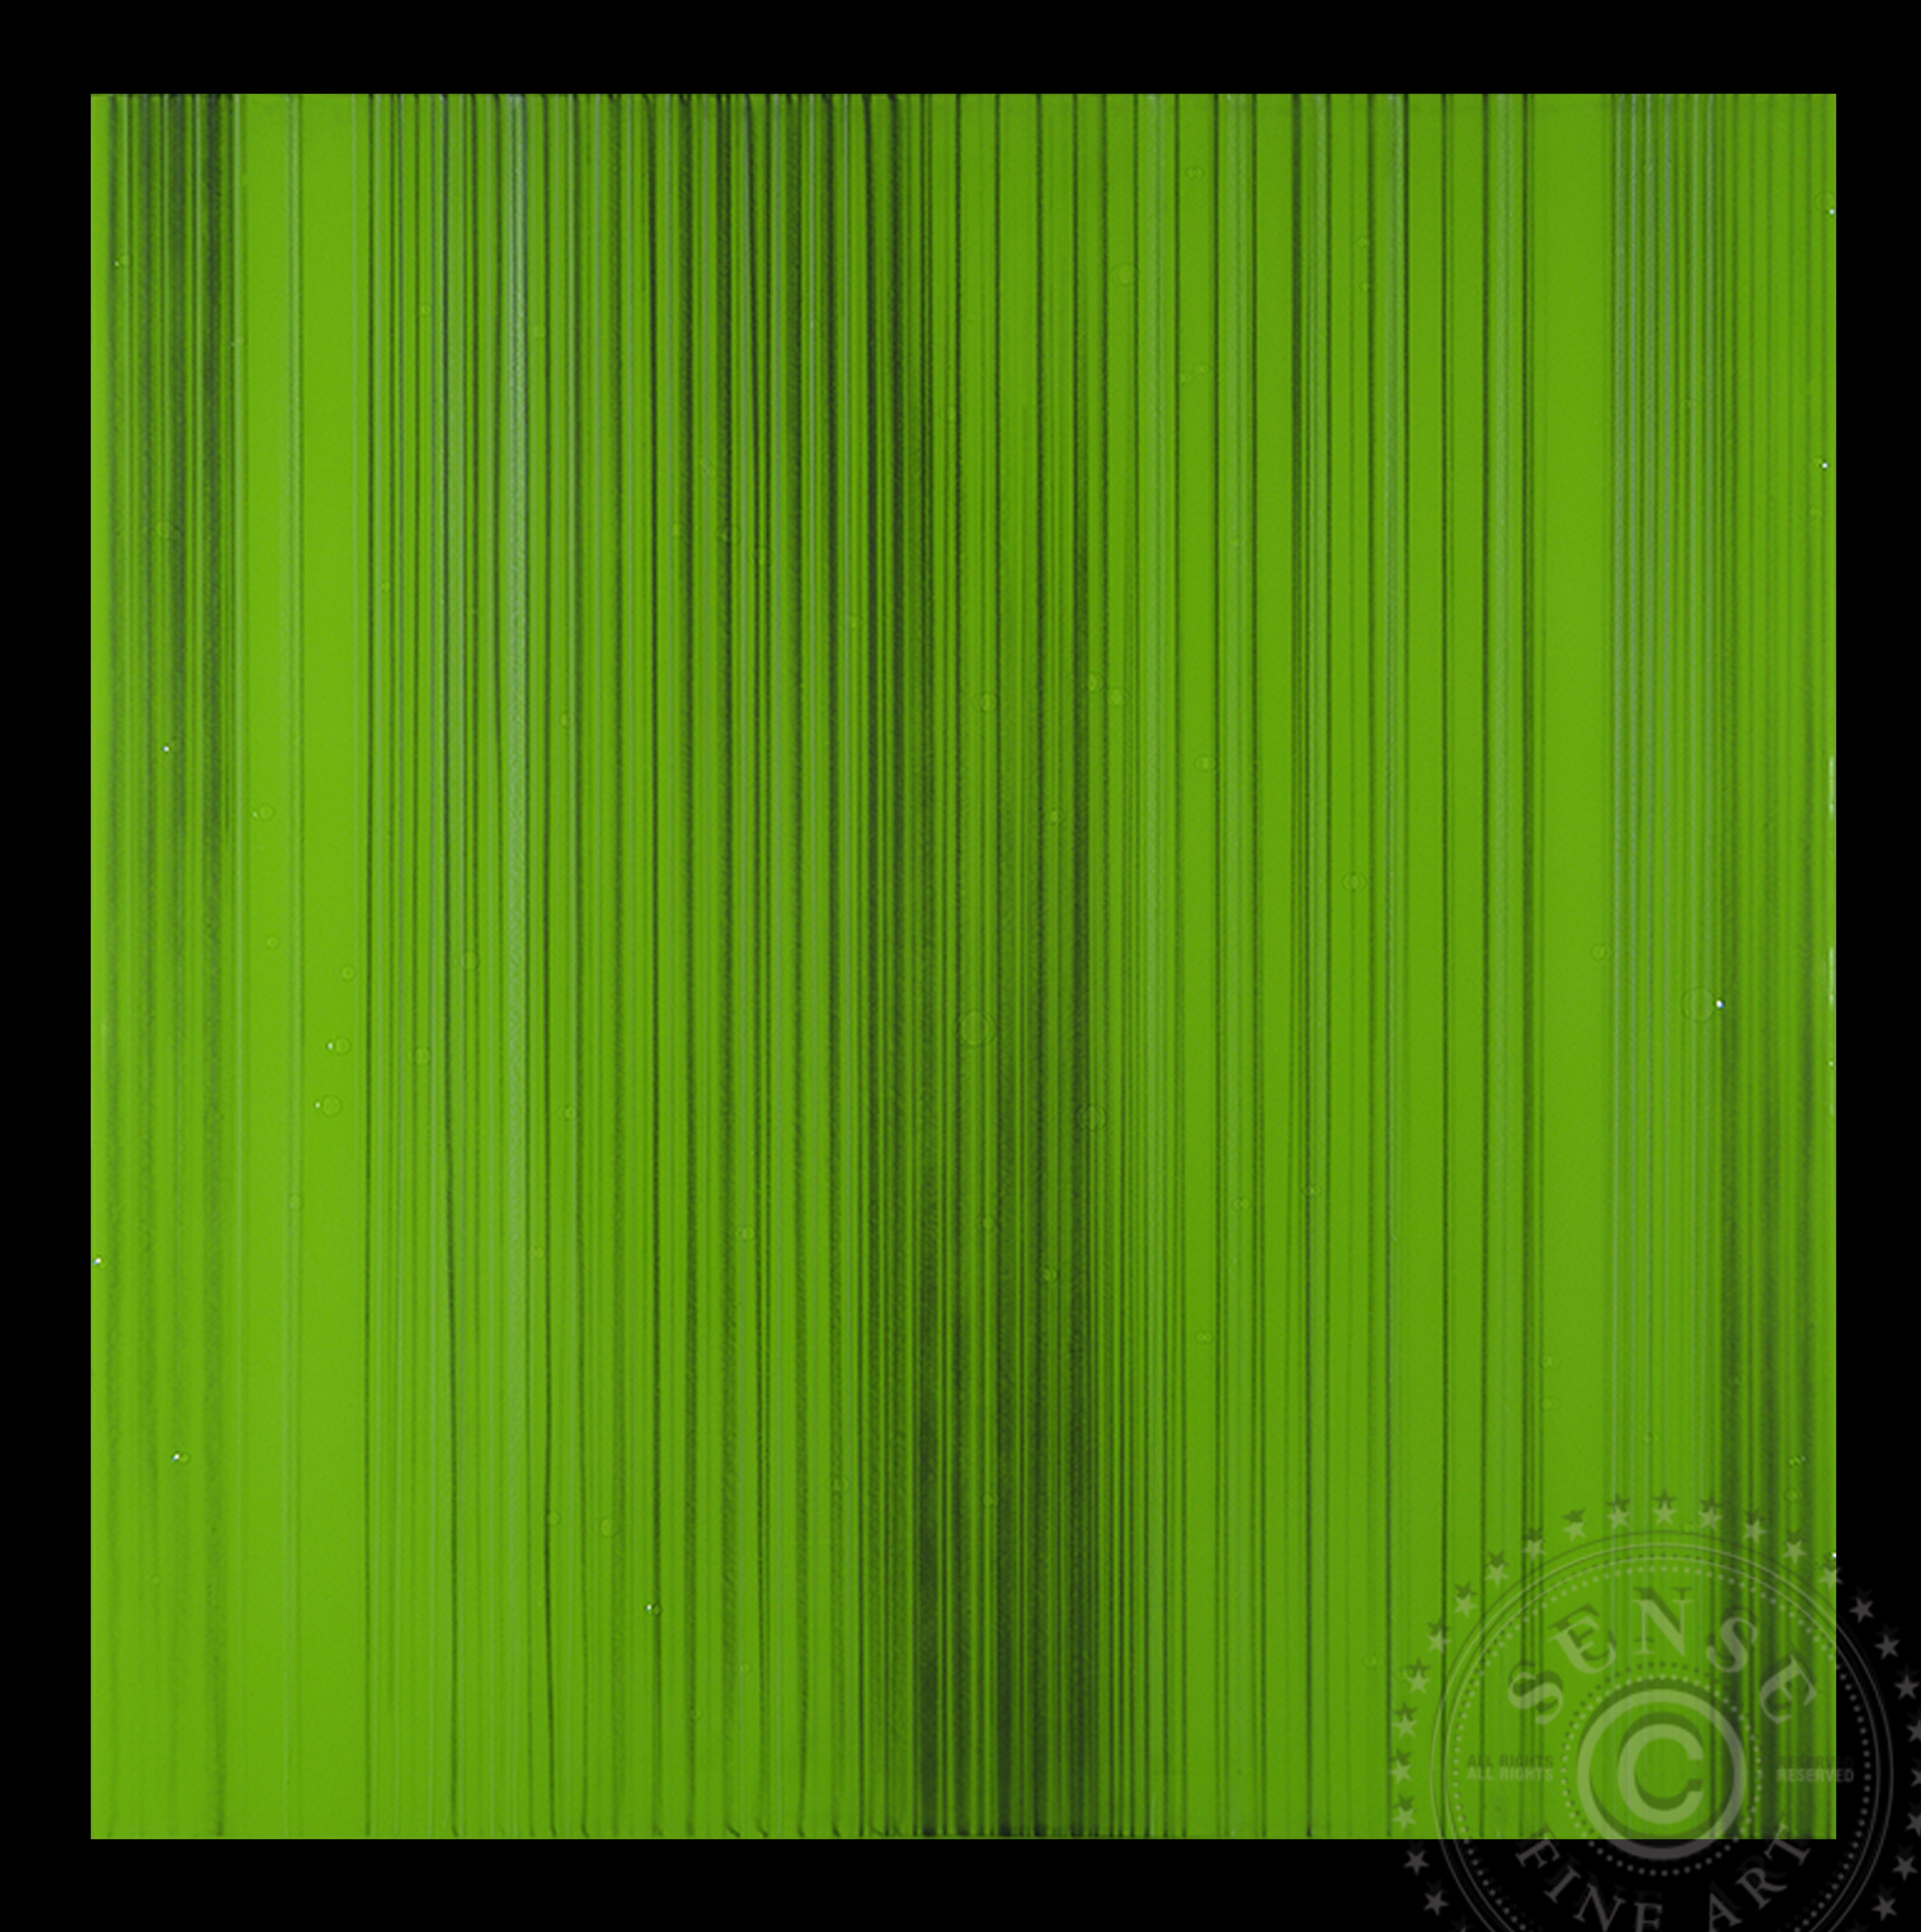 SENSE_fine_art_Kalloch_Green_24x24in_